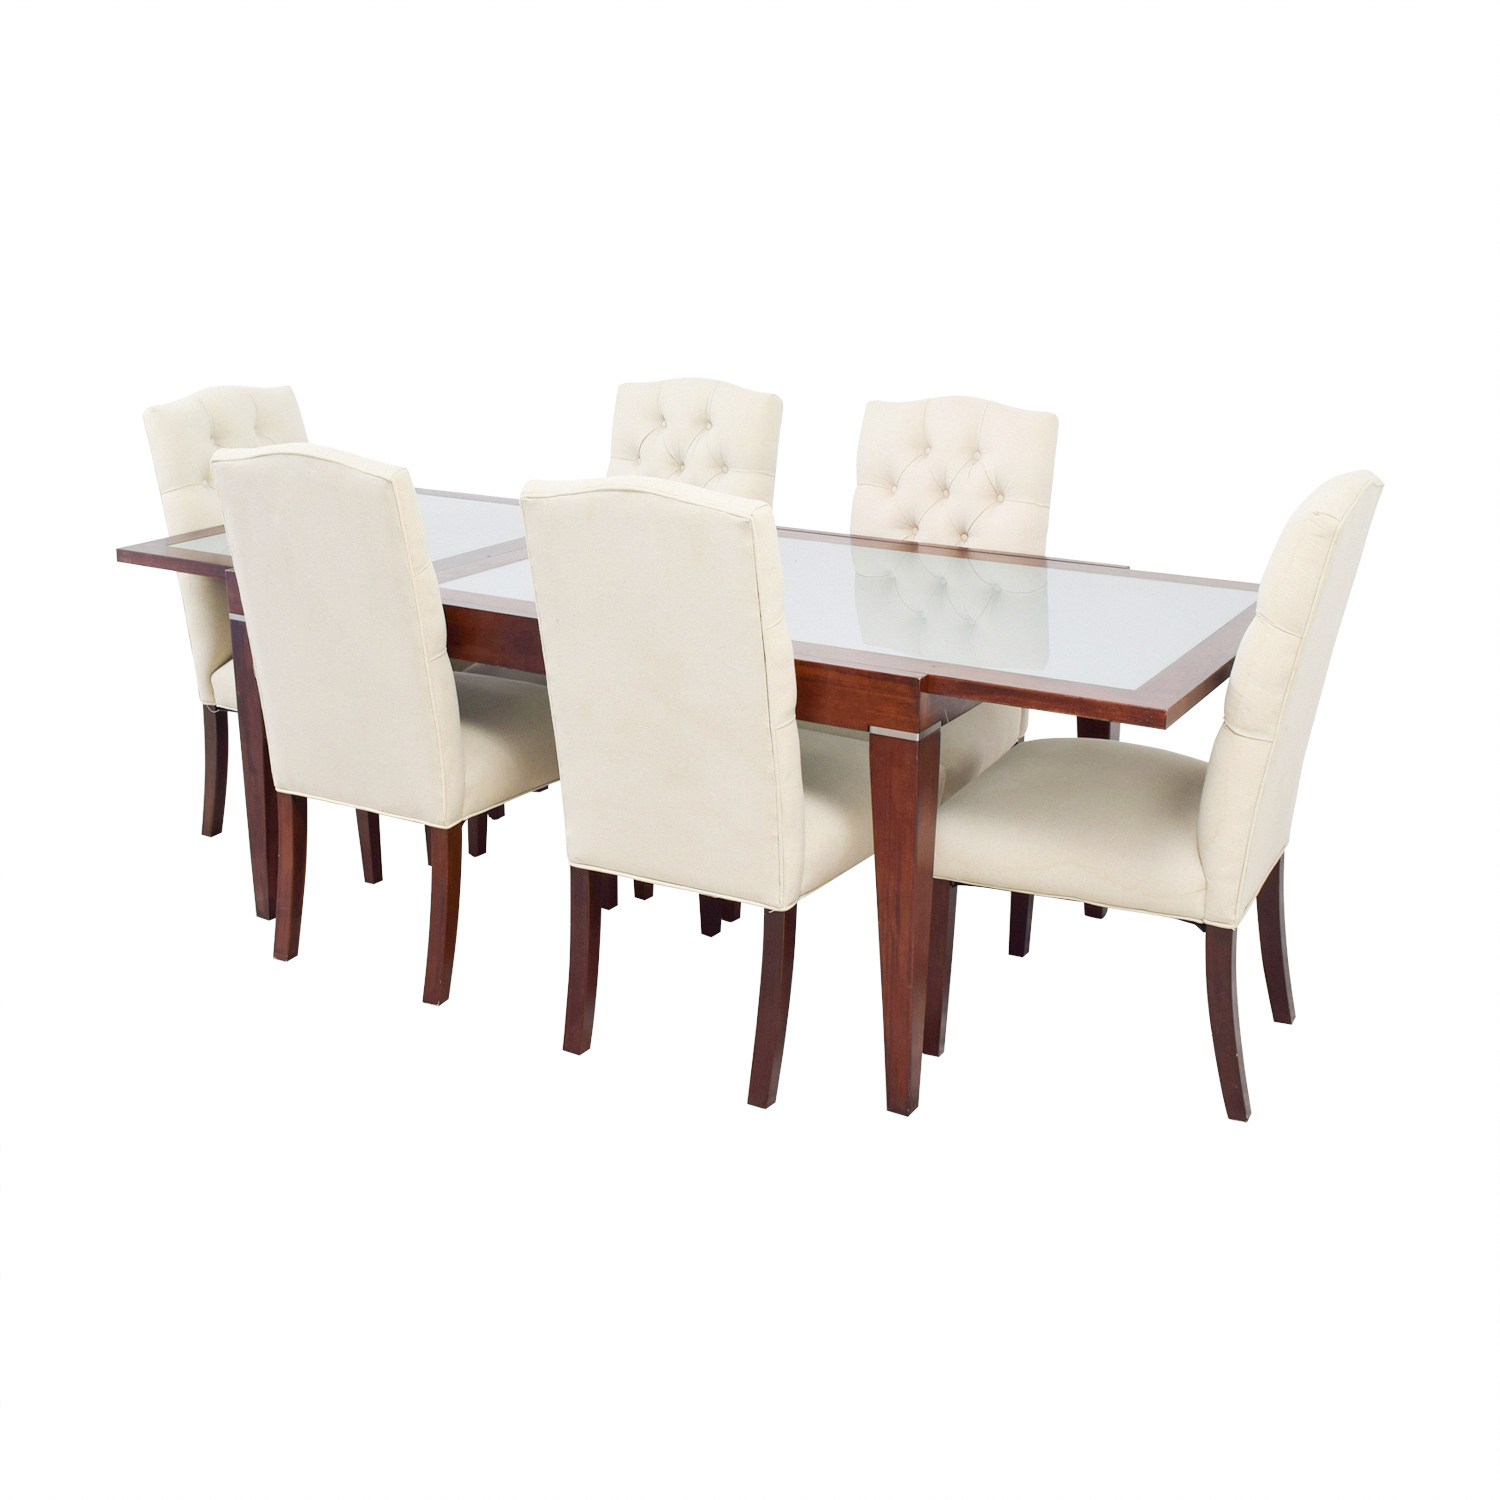 West Elm West Elm Extendable Glass & Wood Dining Set with Upholstered Tufted Chairs discount